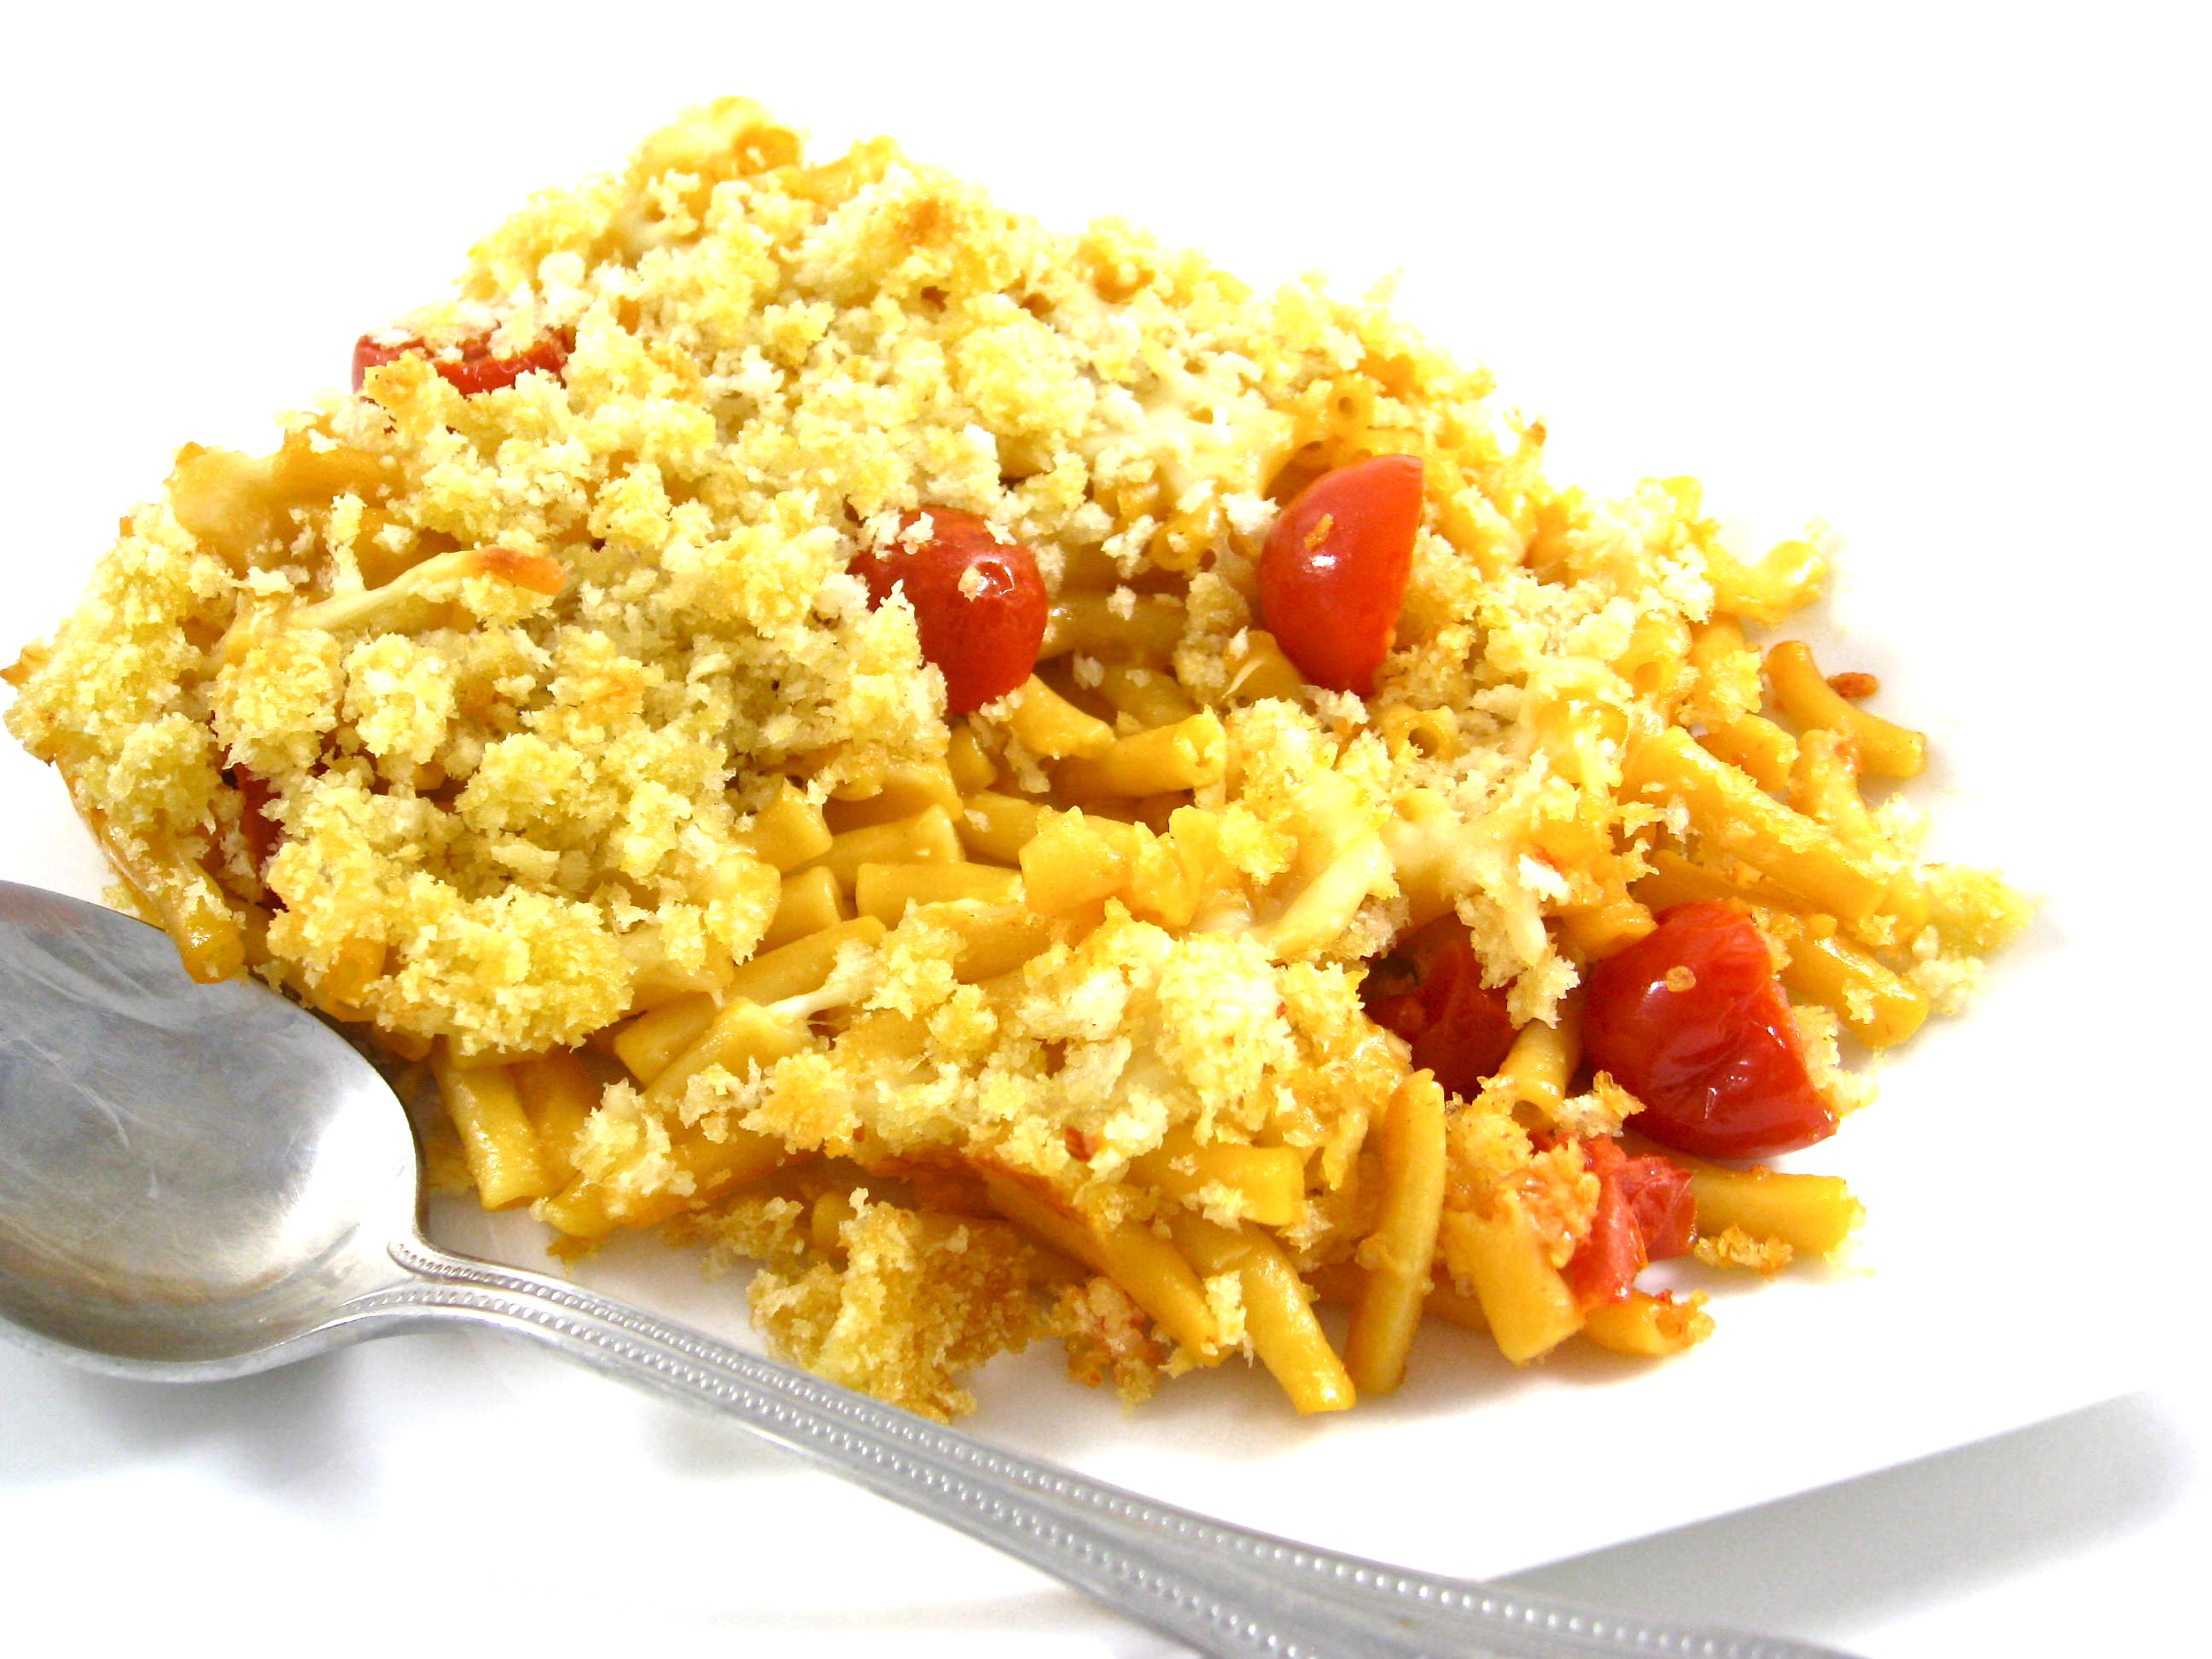 Low Fat Three Cheese Mac and Cheese, Made From a Box But Healthier ...